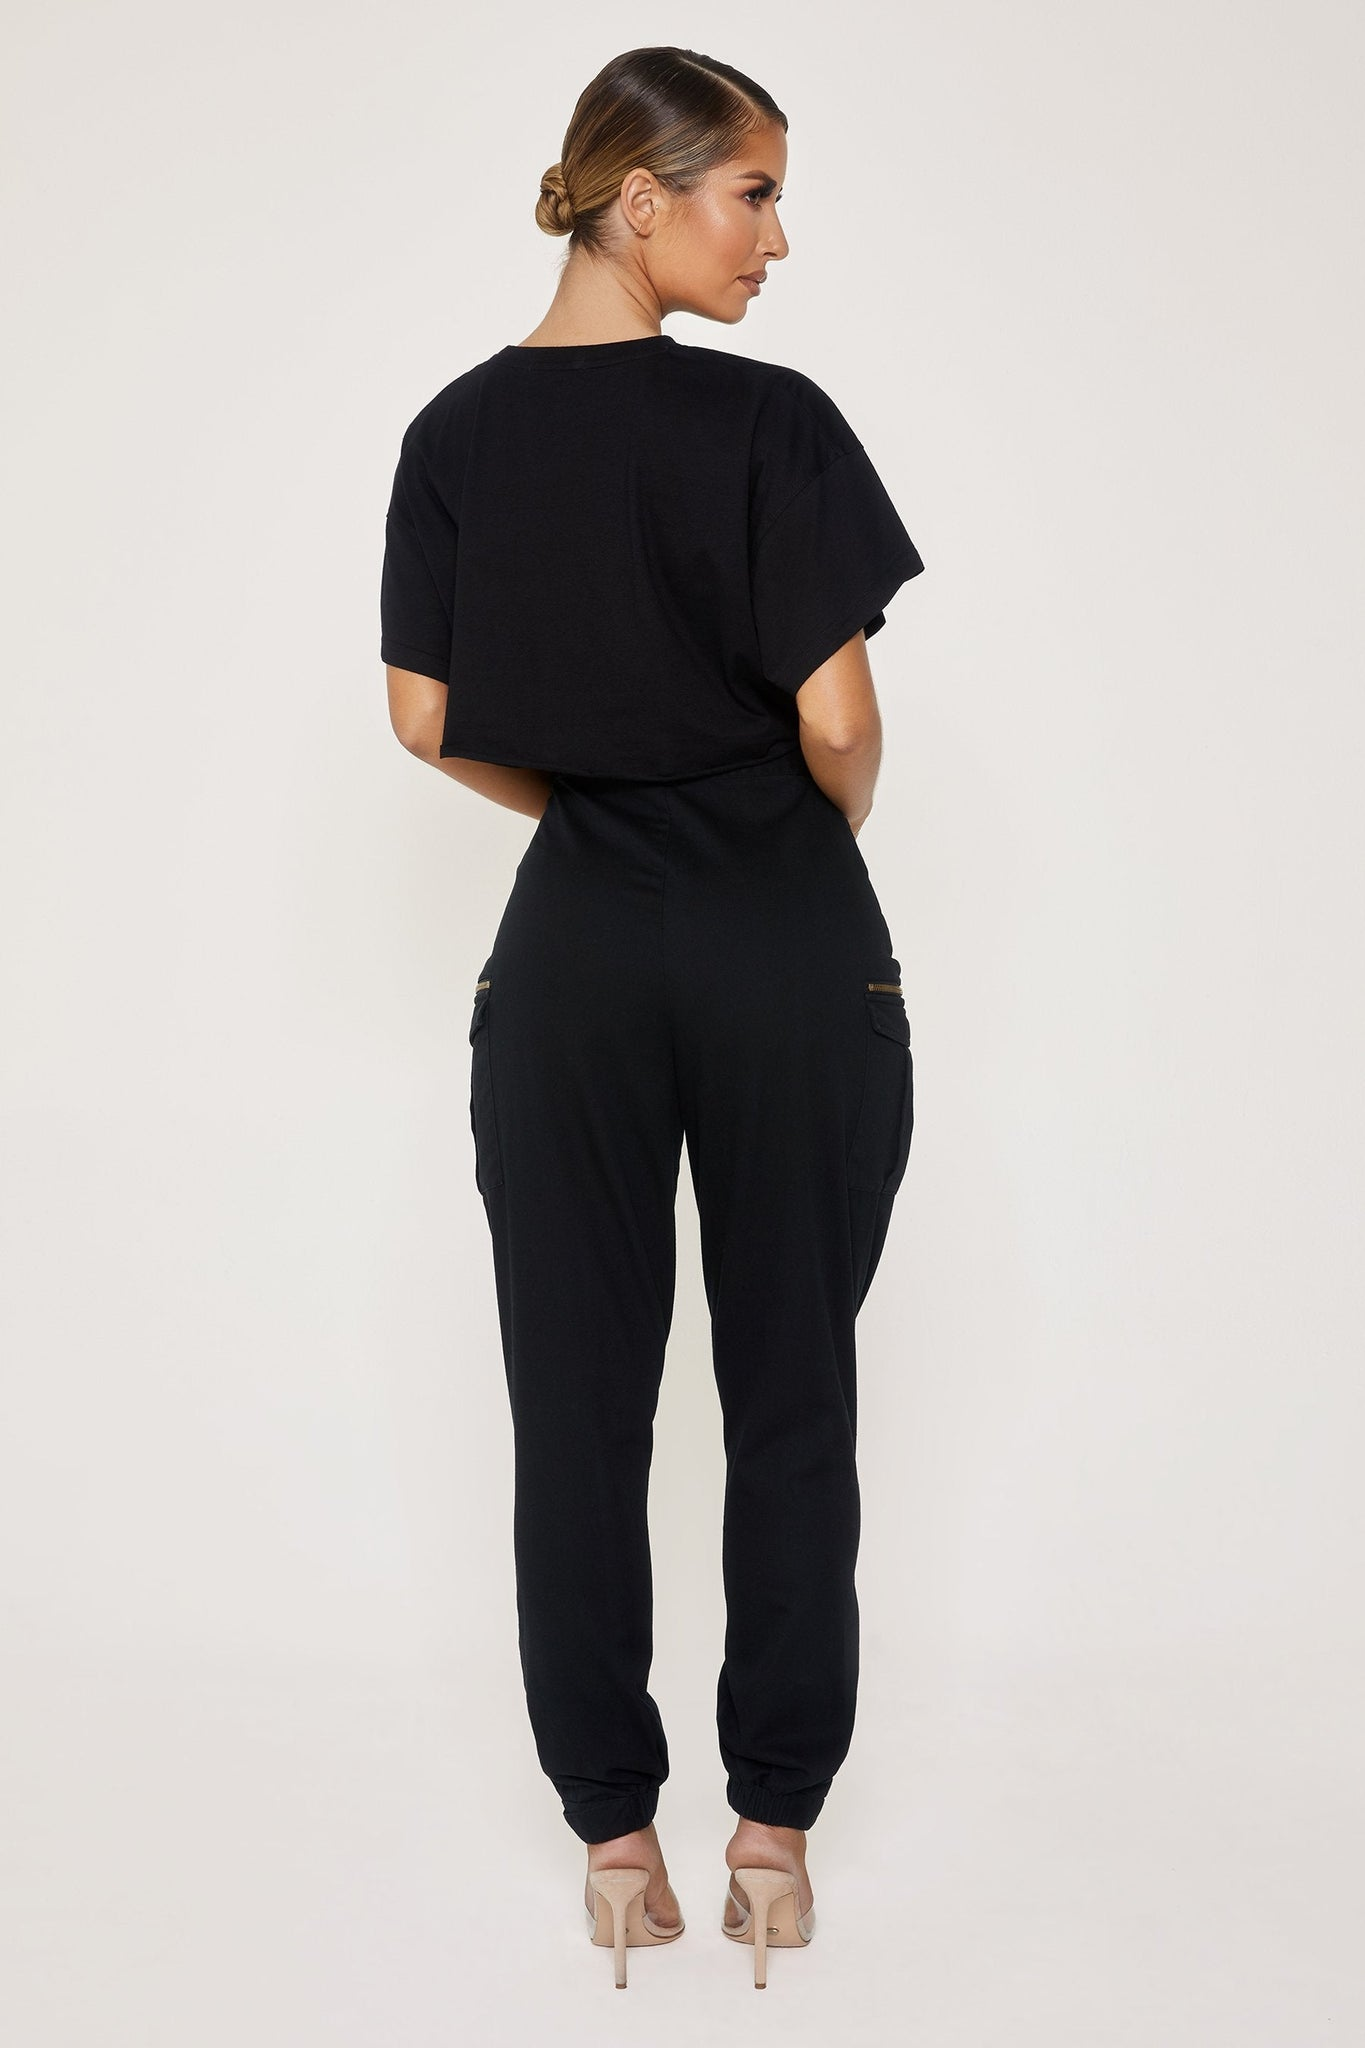 Zippora Cargo Pants - Black - MESHKI